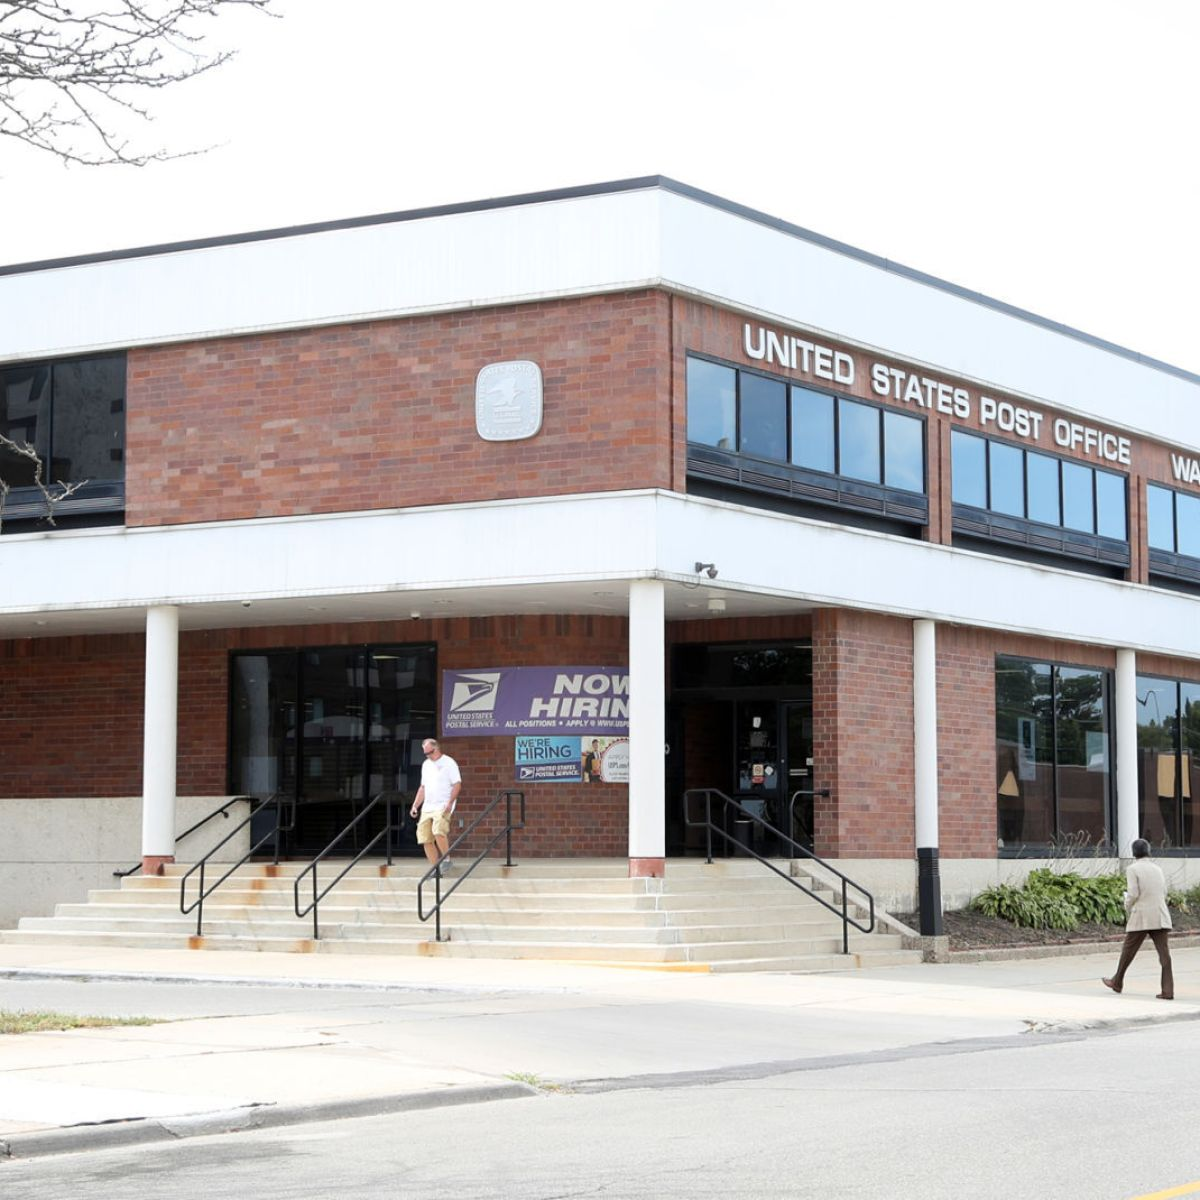 Equipment Removal From Waterloo Post Office Sparks Saturday Protest Local News Wcfcourier Com